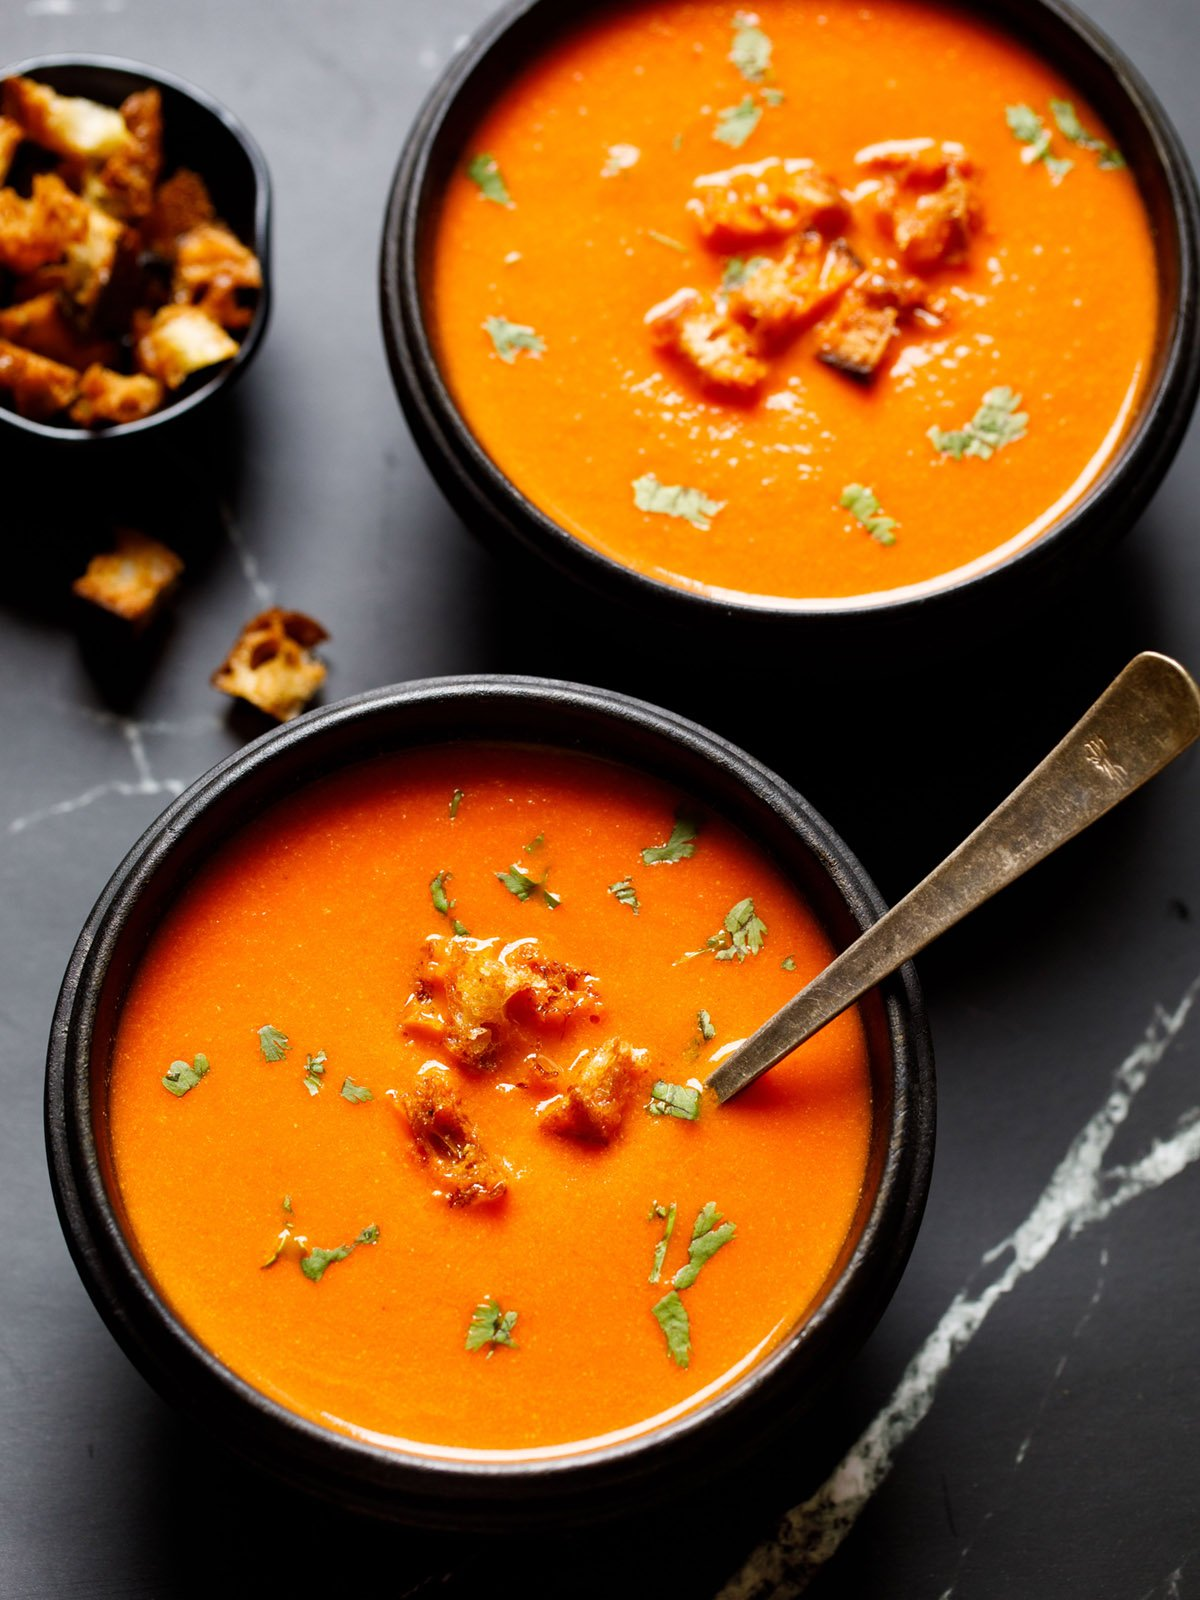 tomato soup in a black wooden bowl with a silver spoon topped with croutons and parsley